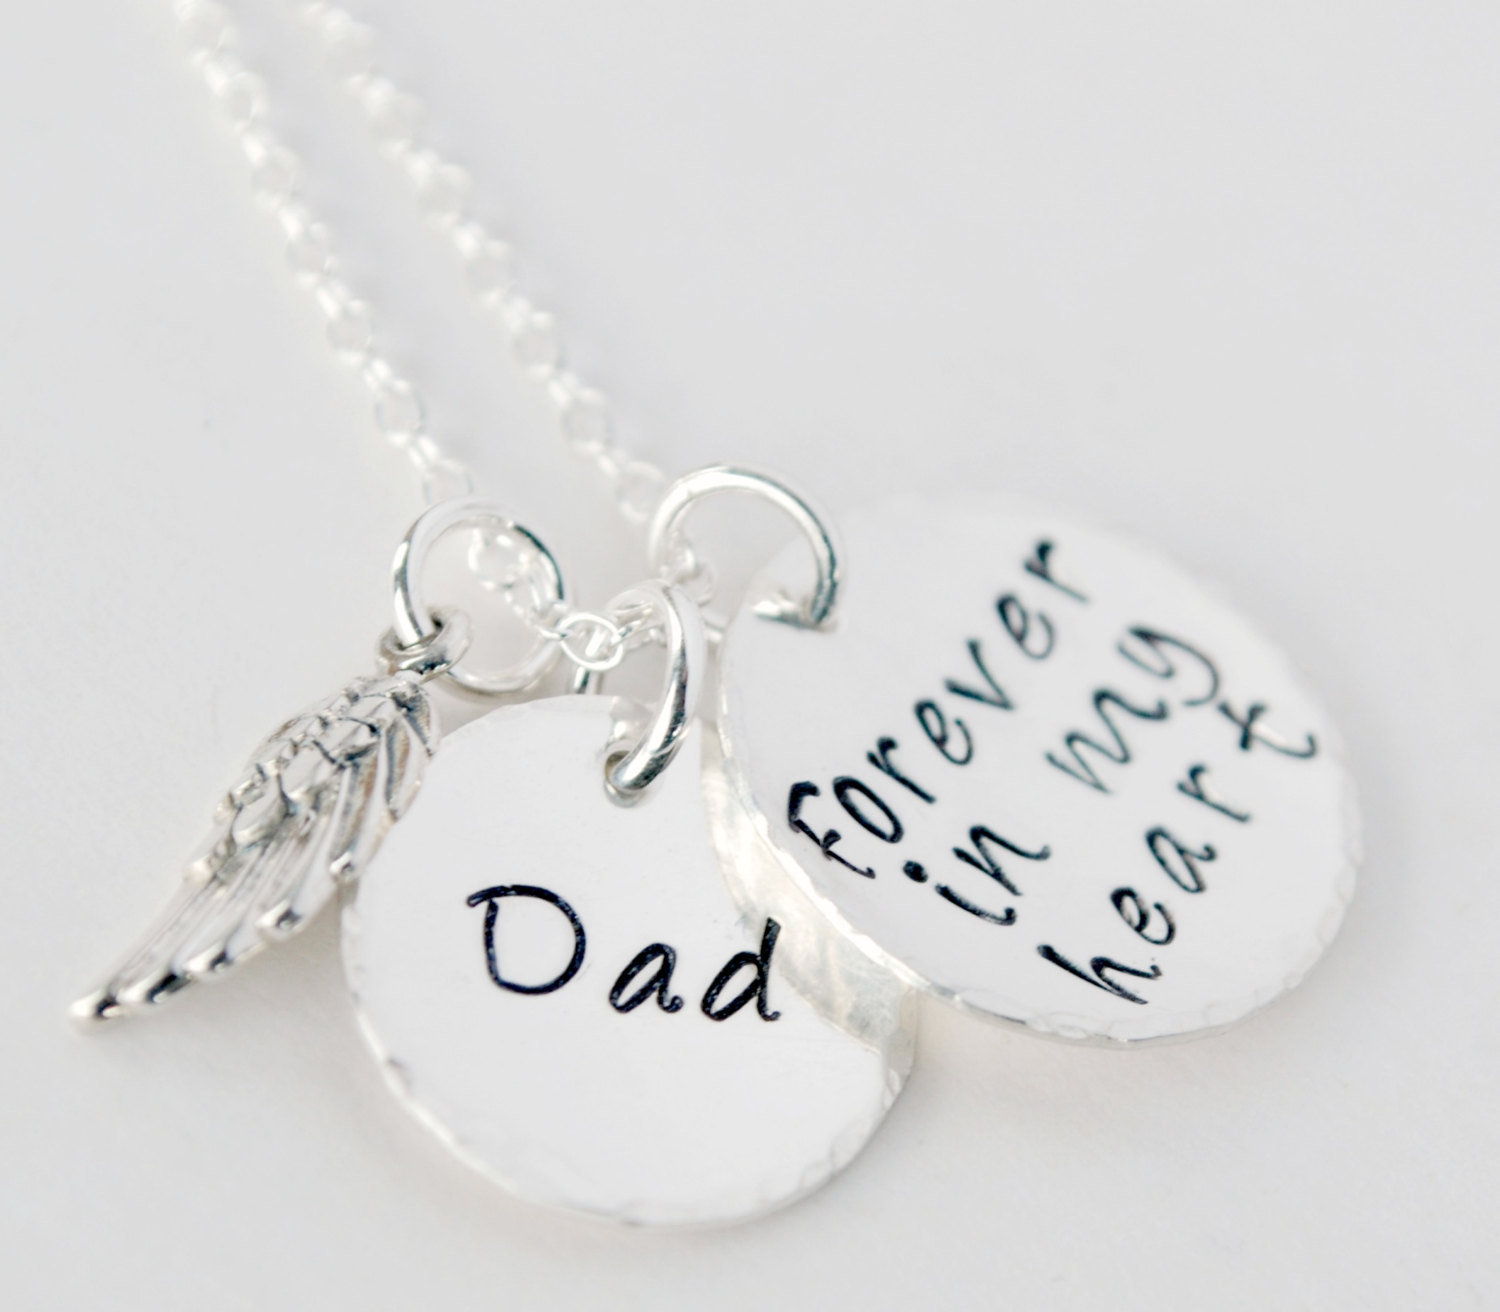 Dad, Forever in My Heart Memorial Necklace